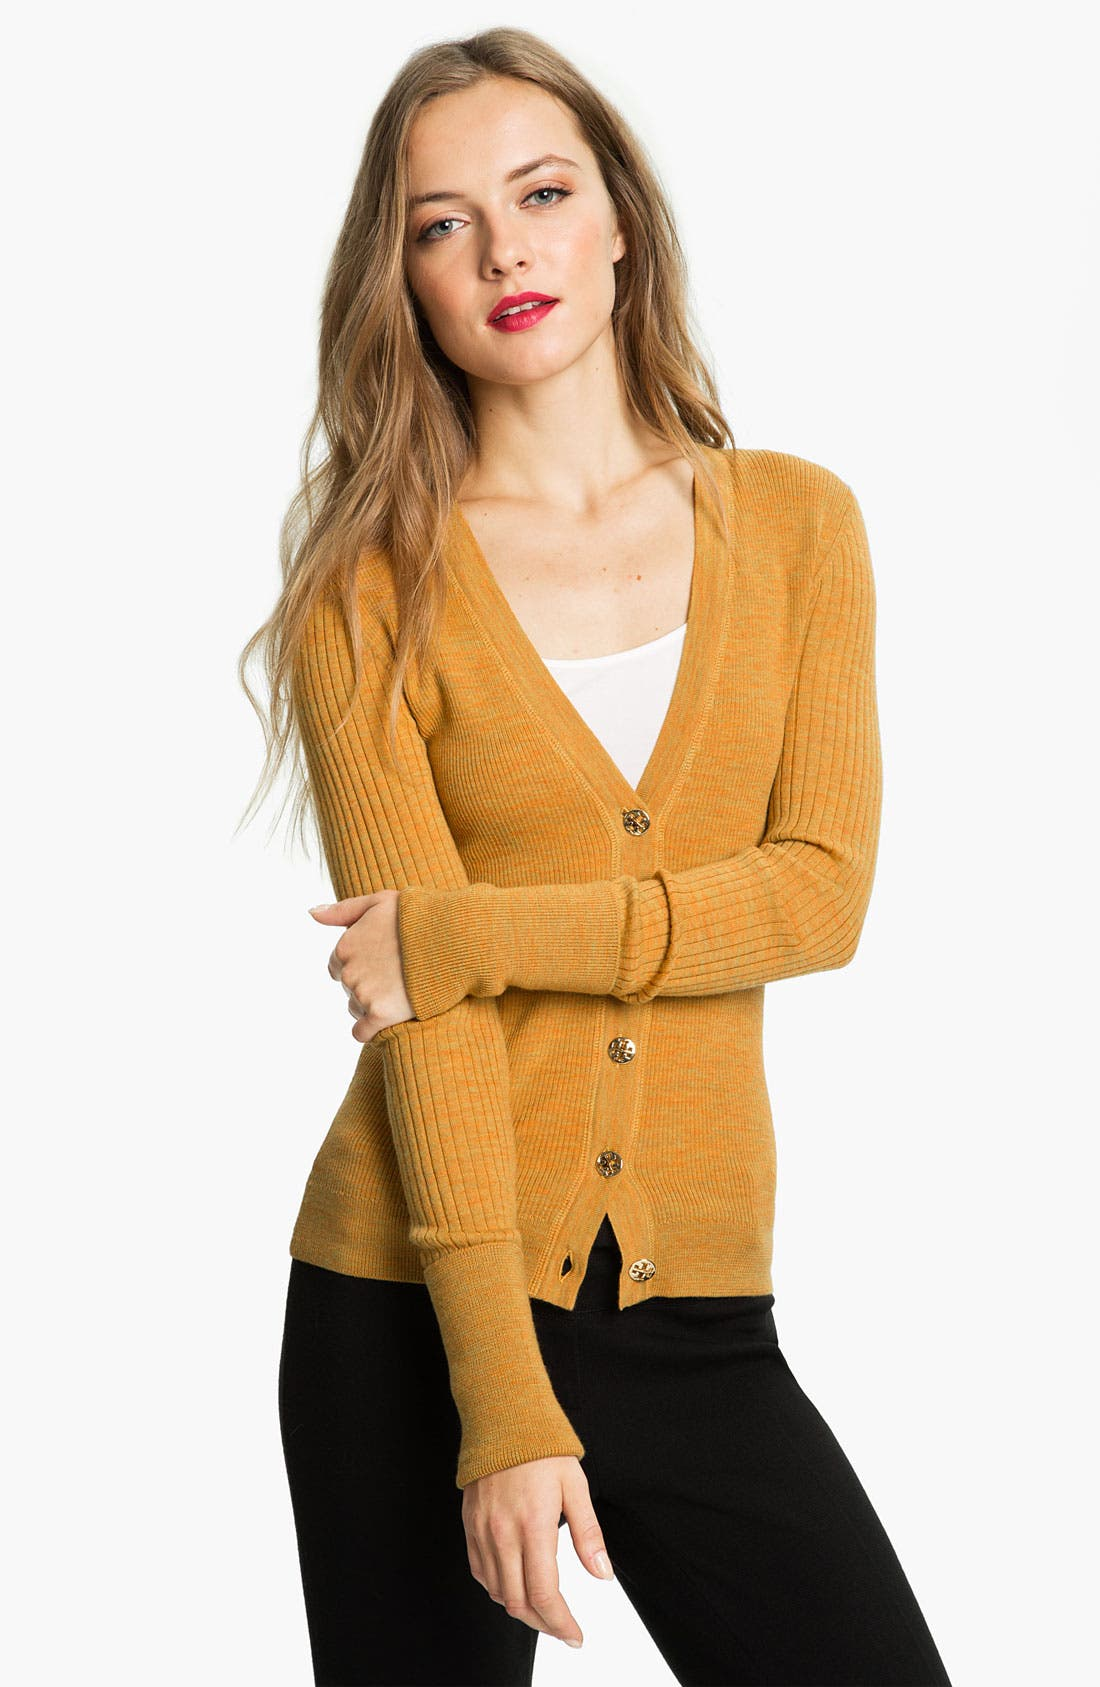 Main Image - Tory Burch 'Shrunken Simone' Cardigan